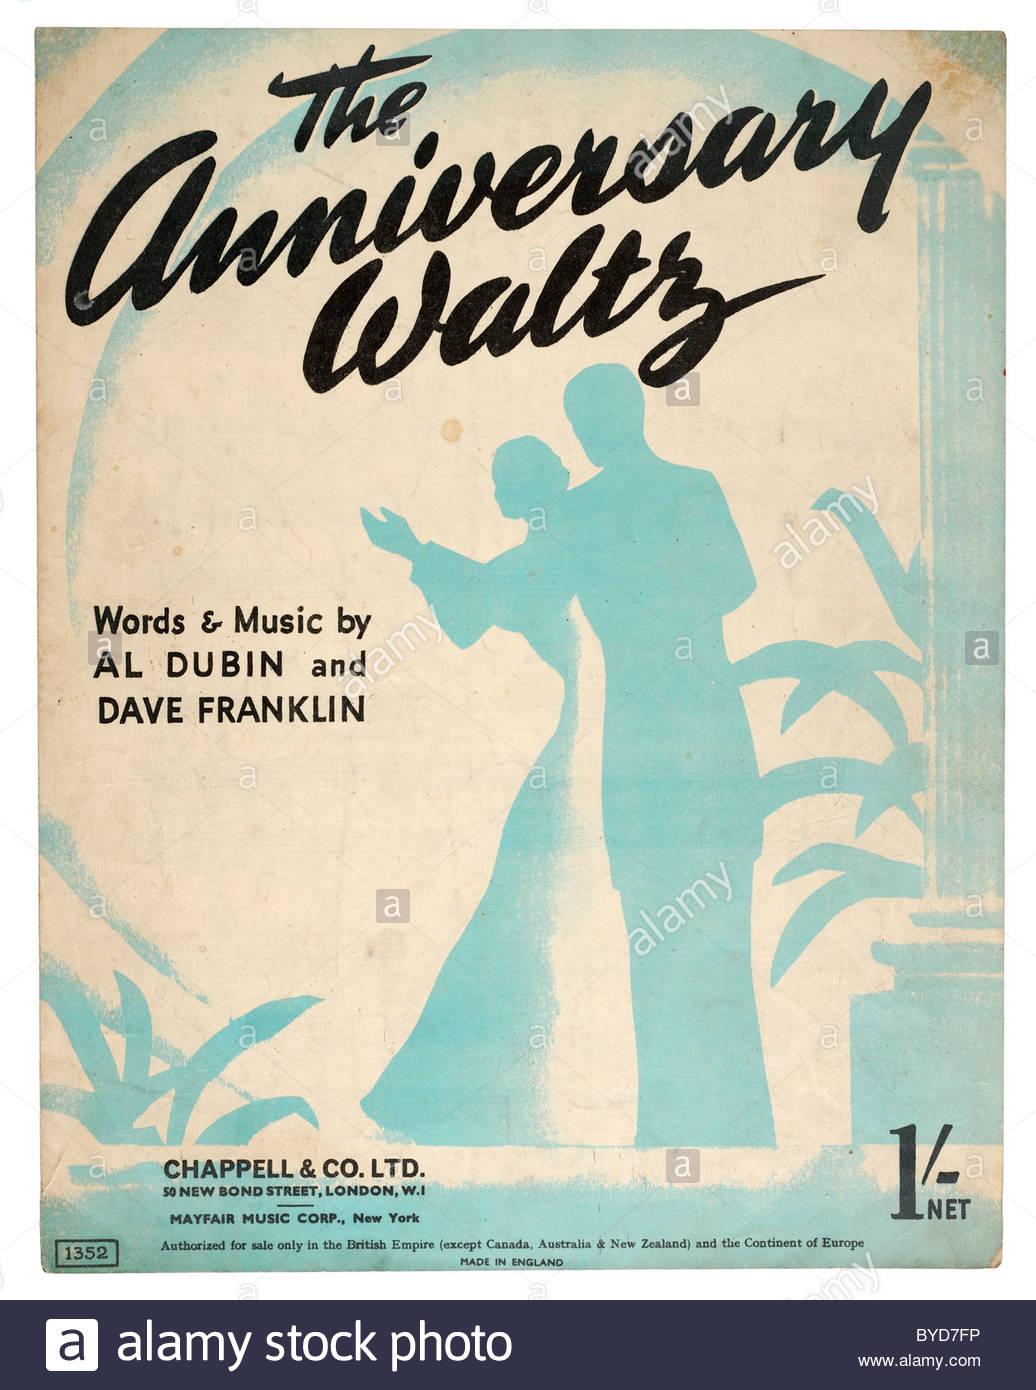 Old Sheet Music Front Cover From 1941 Titled The Anniversary Waltz Words And By Al Dubin Dave Franklin